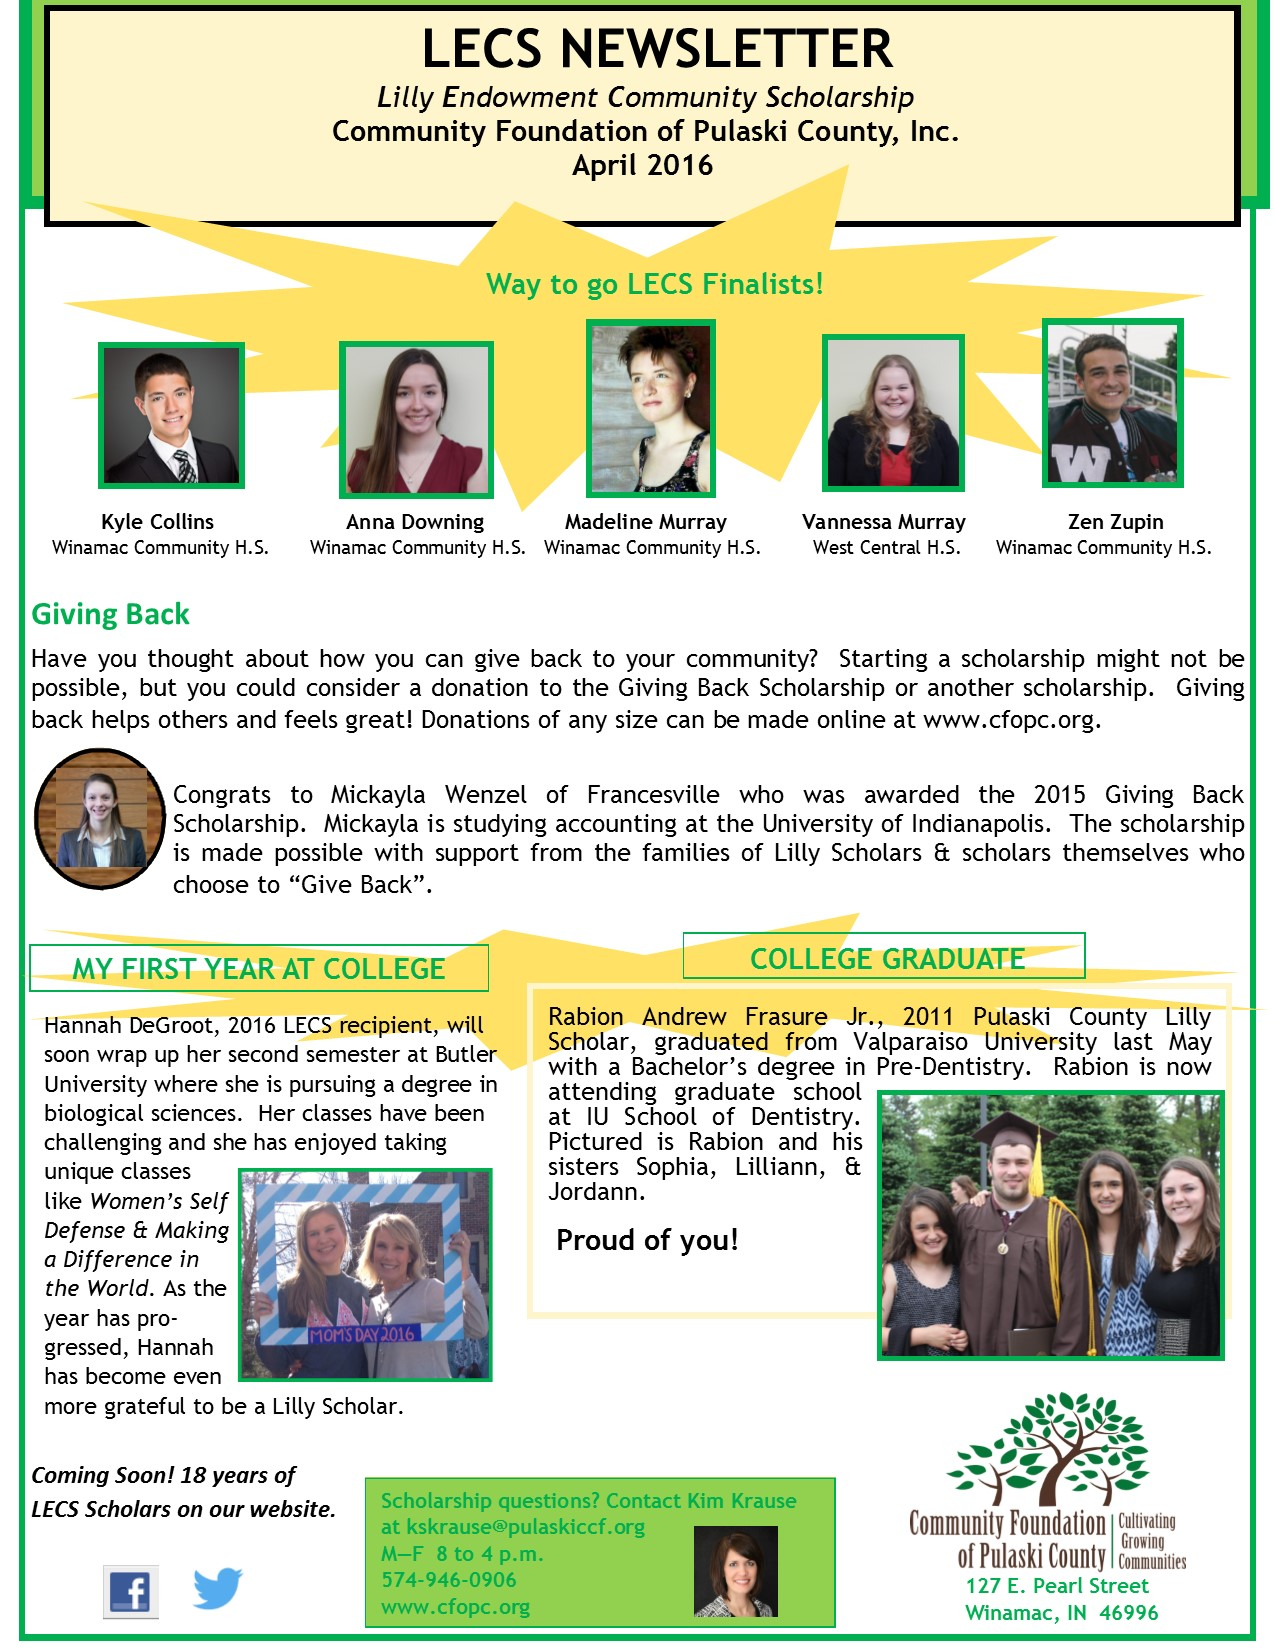 Indiana pulaski county francesville - Check Out The 2016 Newsletter